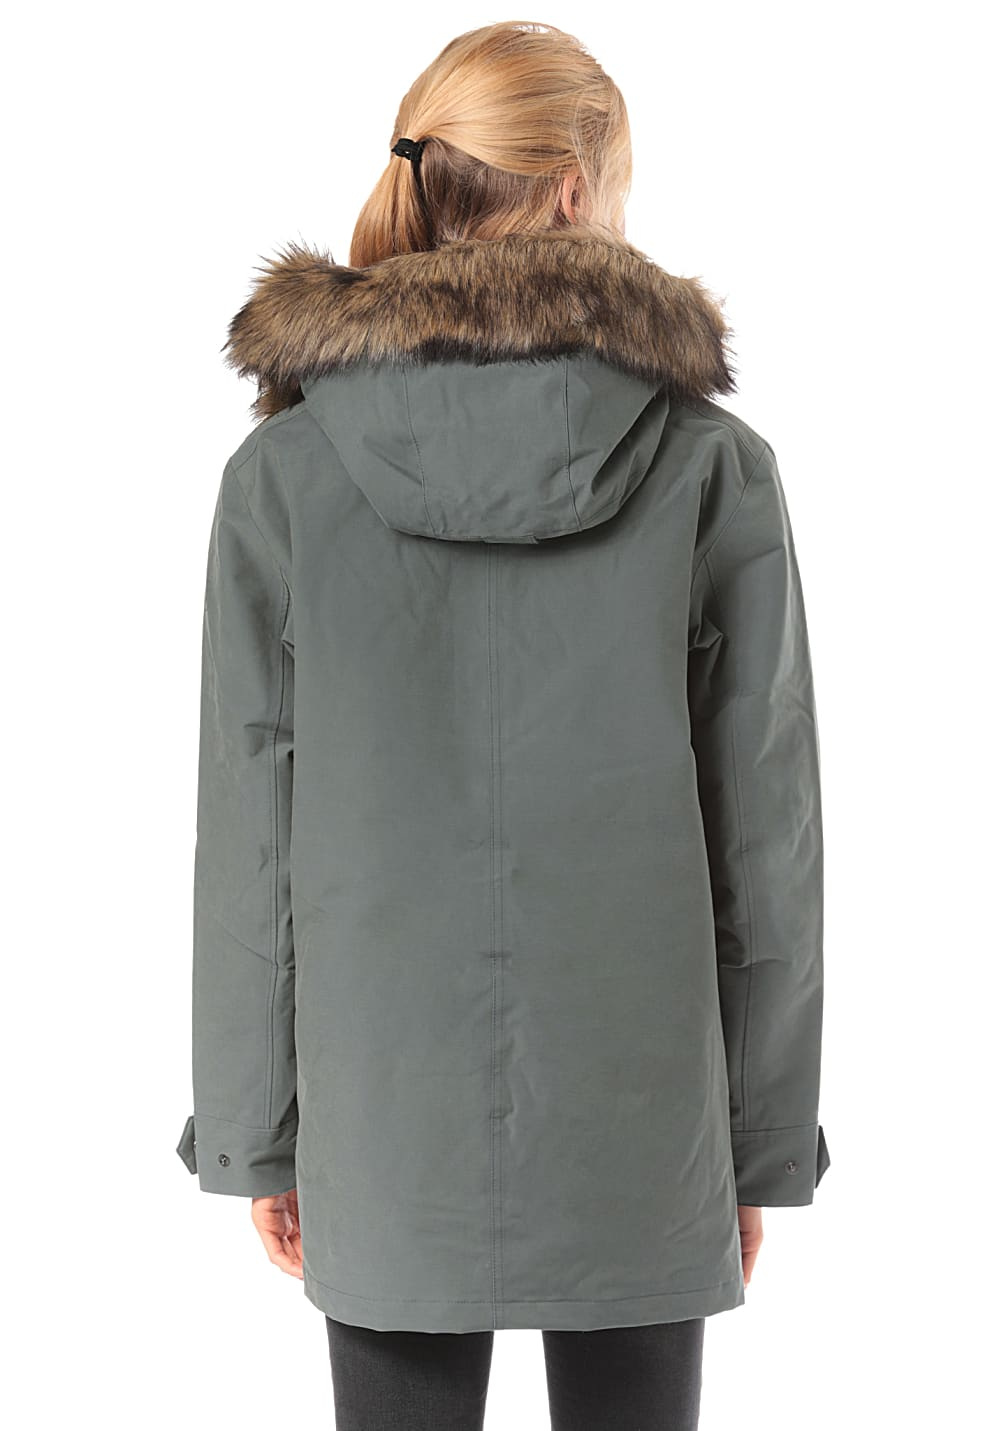 08015a1283a Jack Wolfskin Helsinki - Outdoor Jacket for Women - Grey - Planet Sports